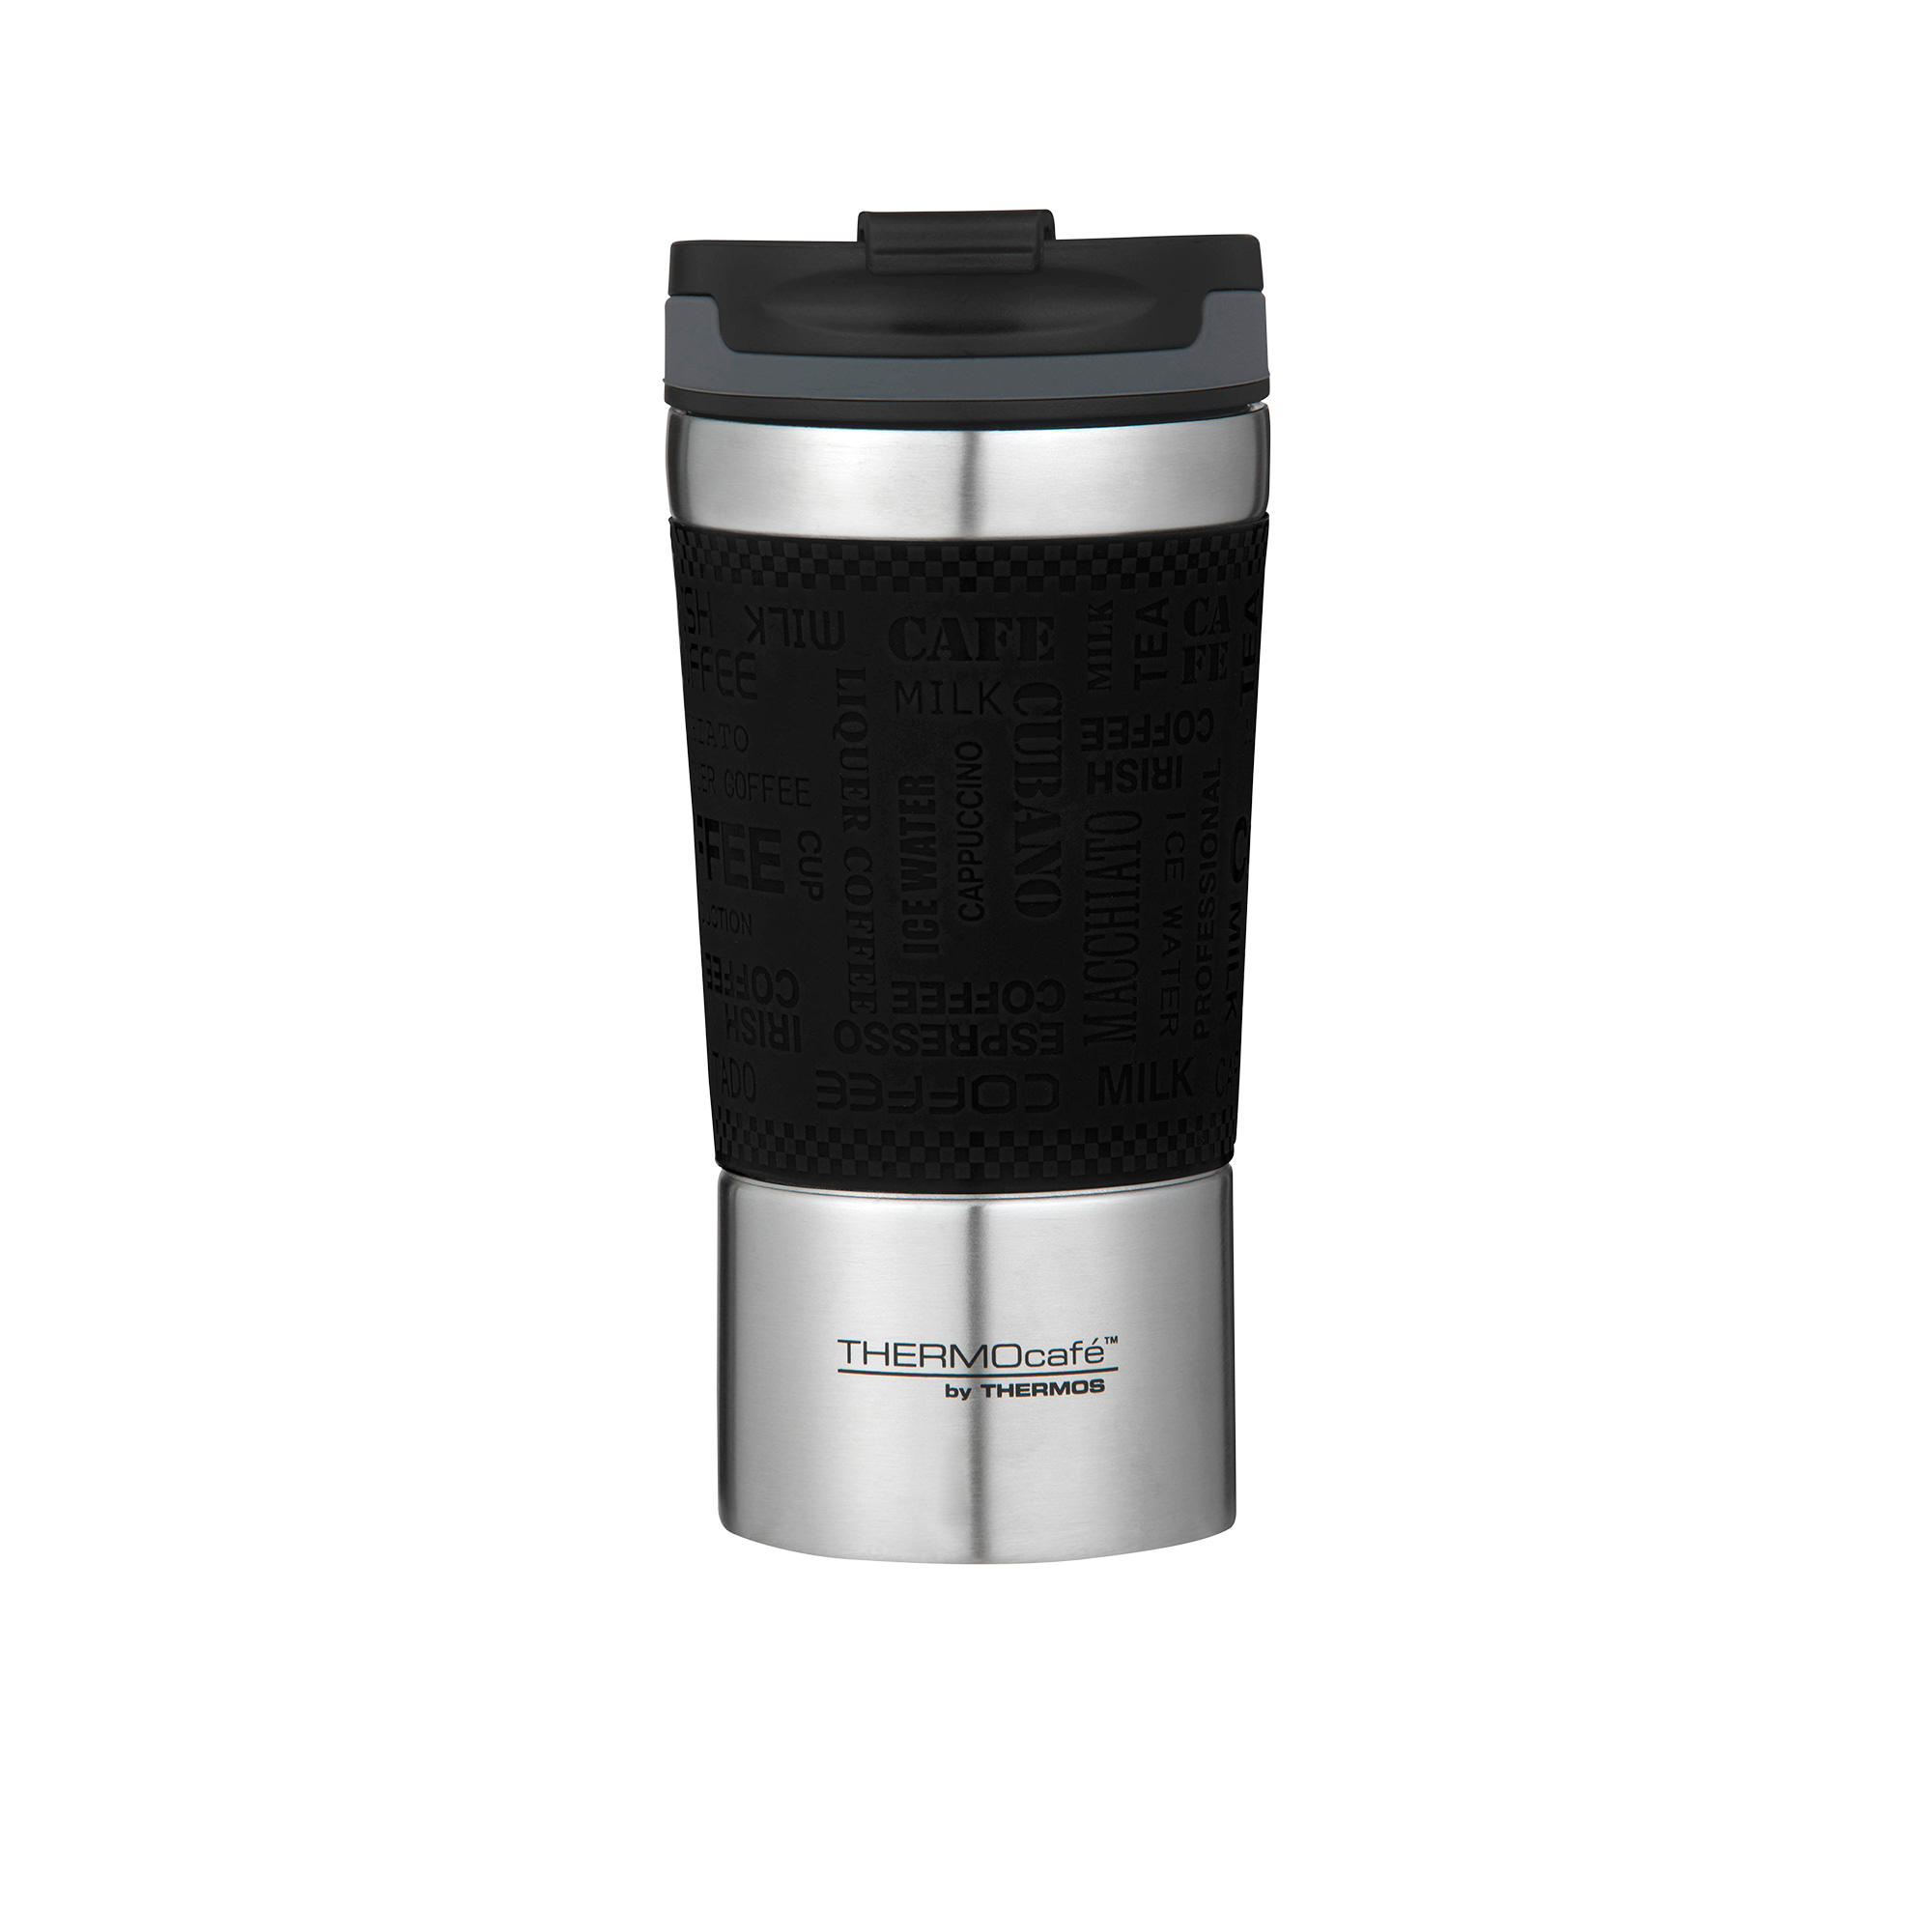 Thermos THERMOcafe Vacuum Insulated Travel Cup 350ml Black